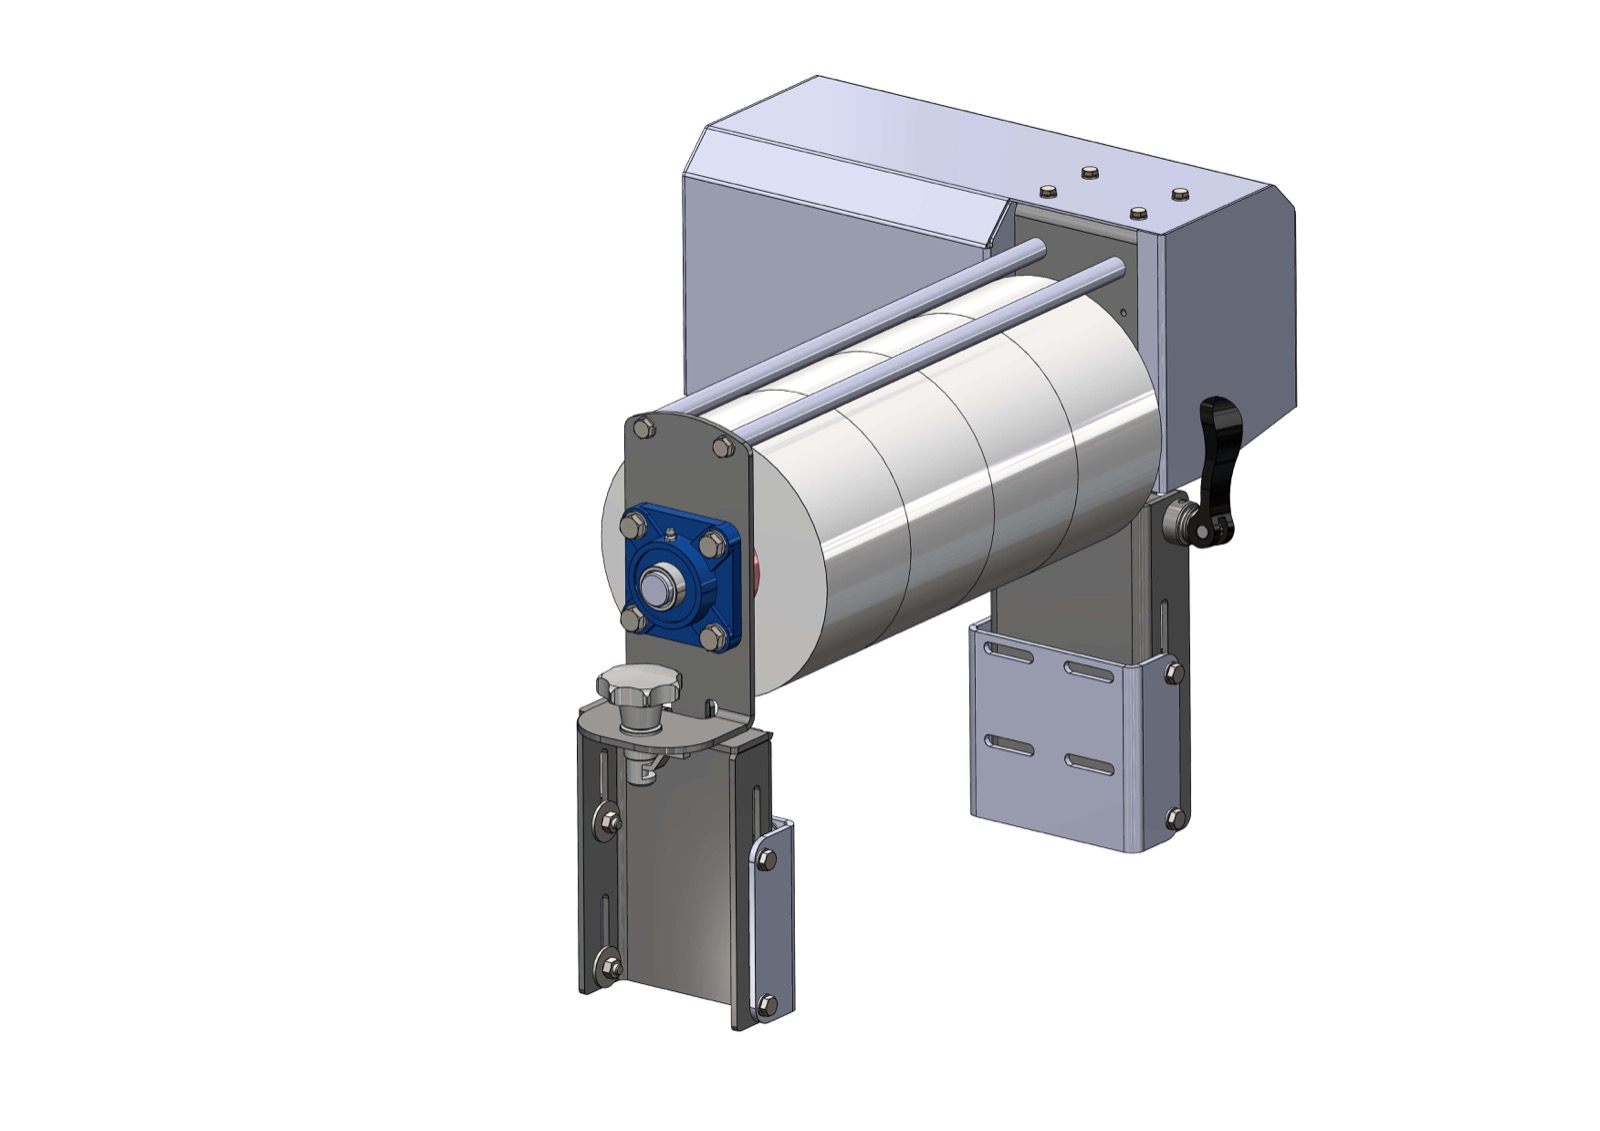 https://www.industrialproductsolutions.nl/wp-content/uploads/2021/05/WhatsApp-Image-2021-05-27-at-14.17.25-16.jpeg